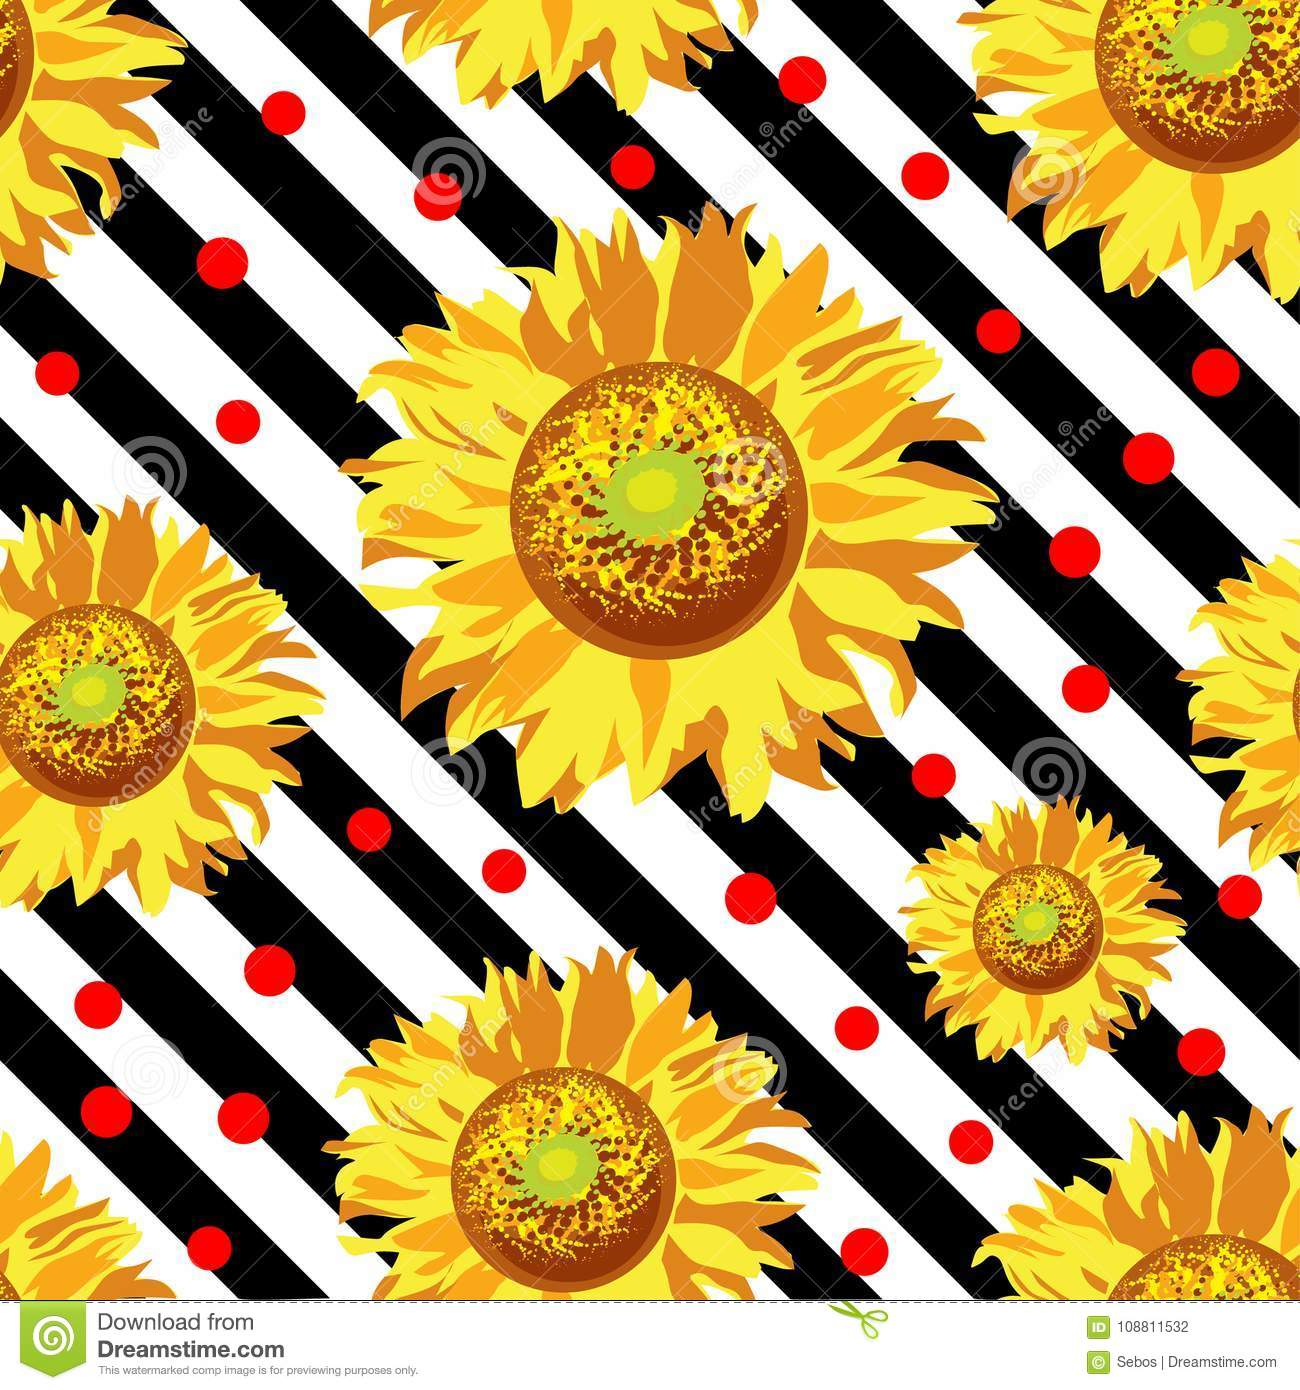 Seamless Vector With Sunflower Flowers On Black And White Stripes